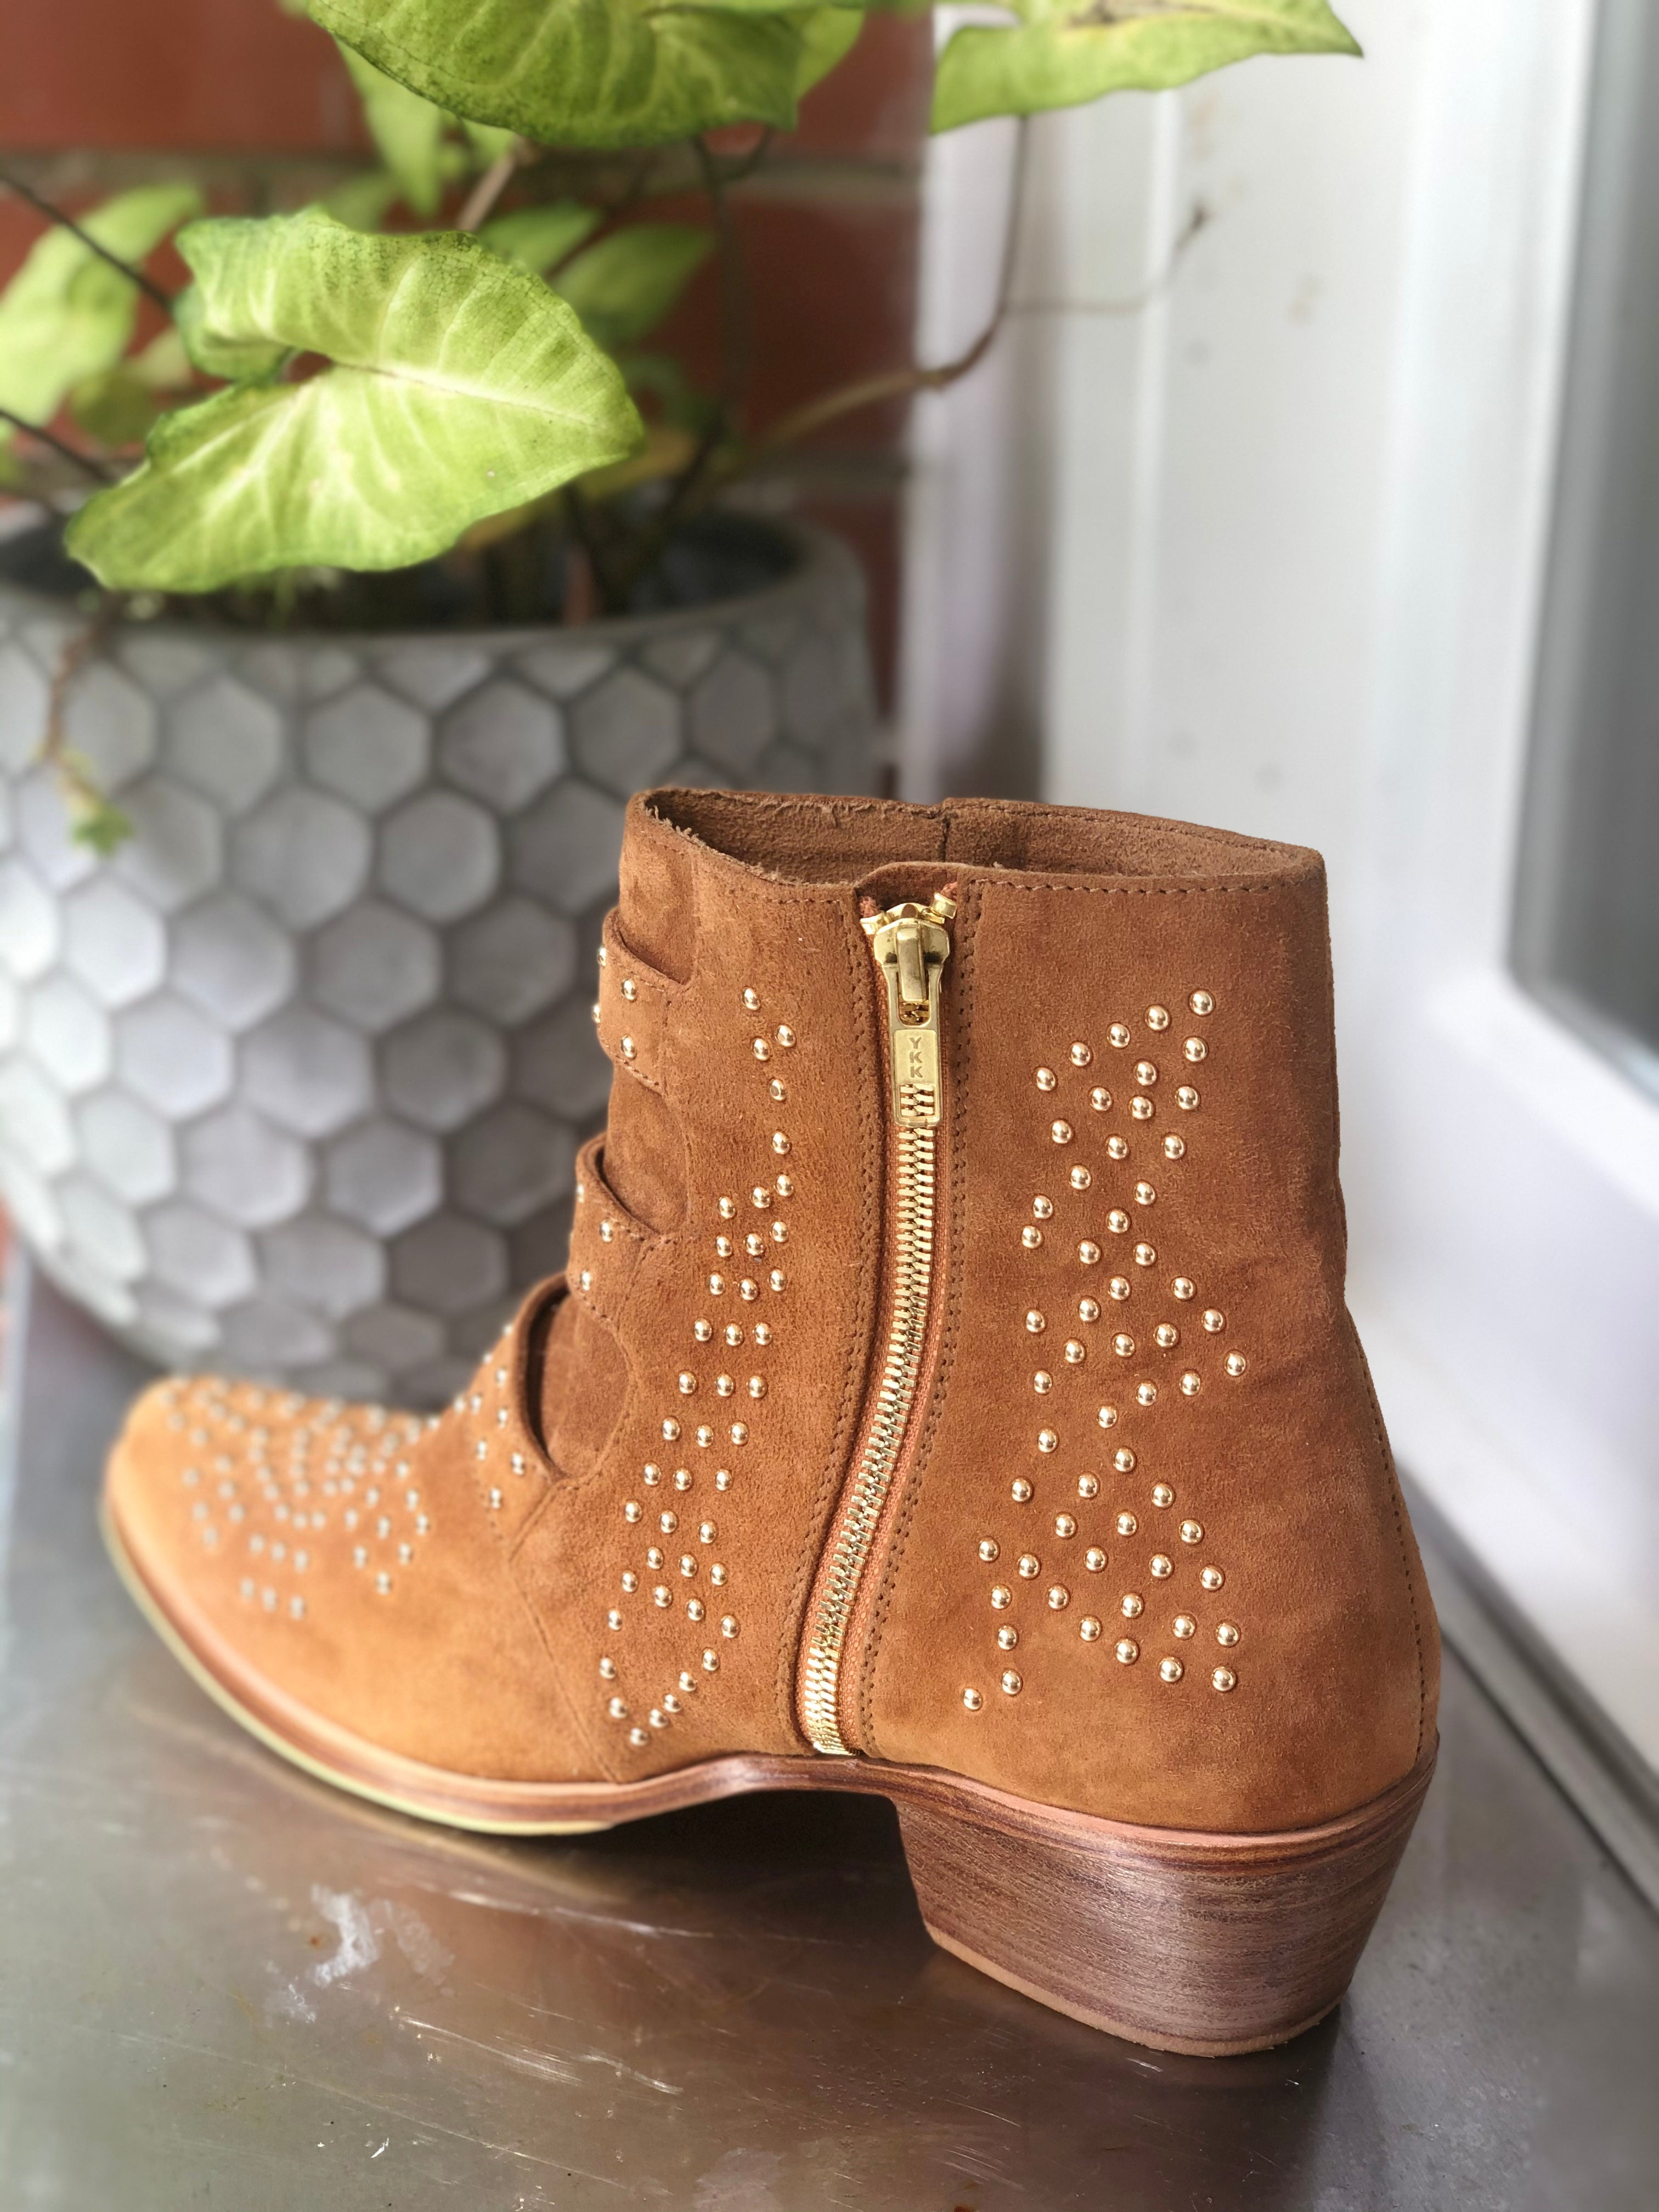 Star Boot  - Tan Suede & Gold - 3 Buckle